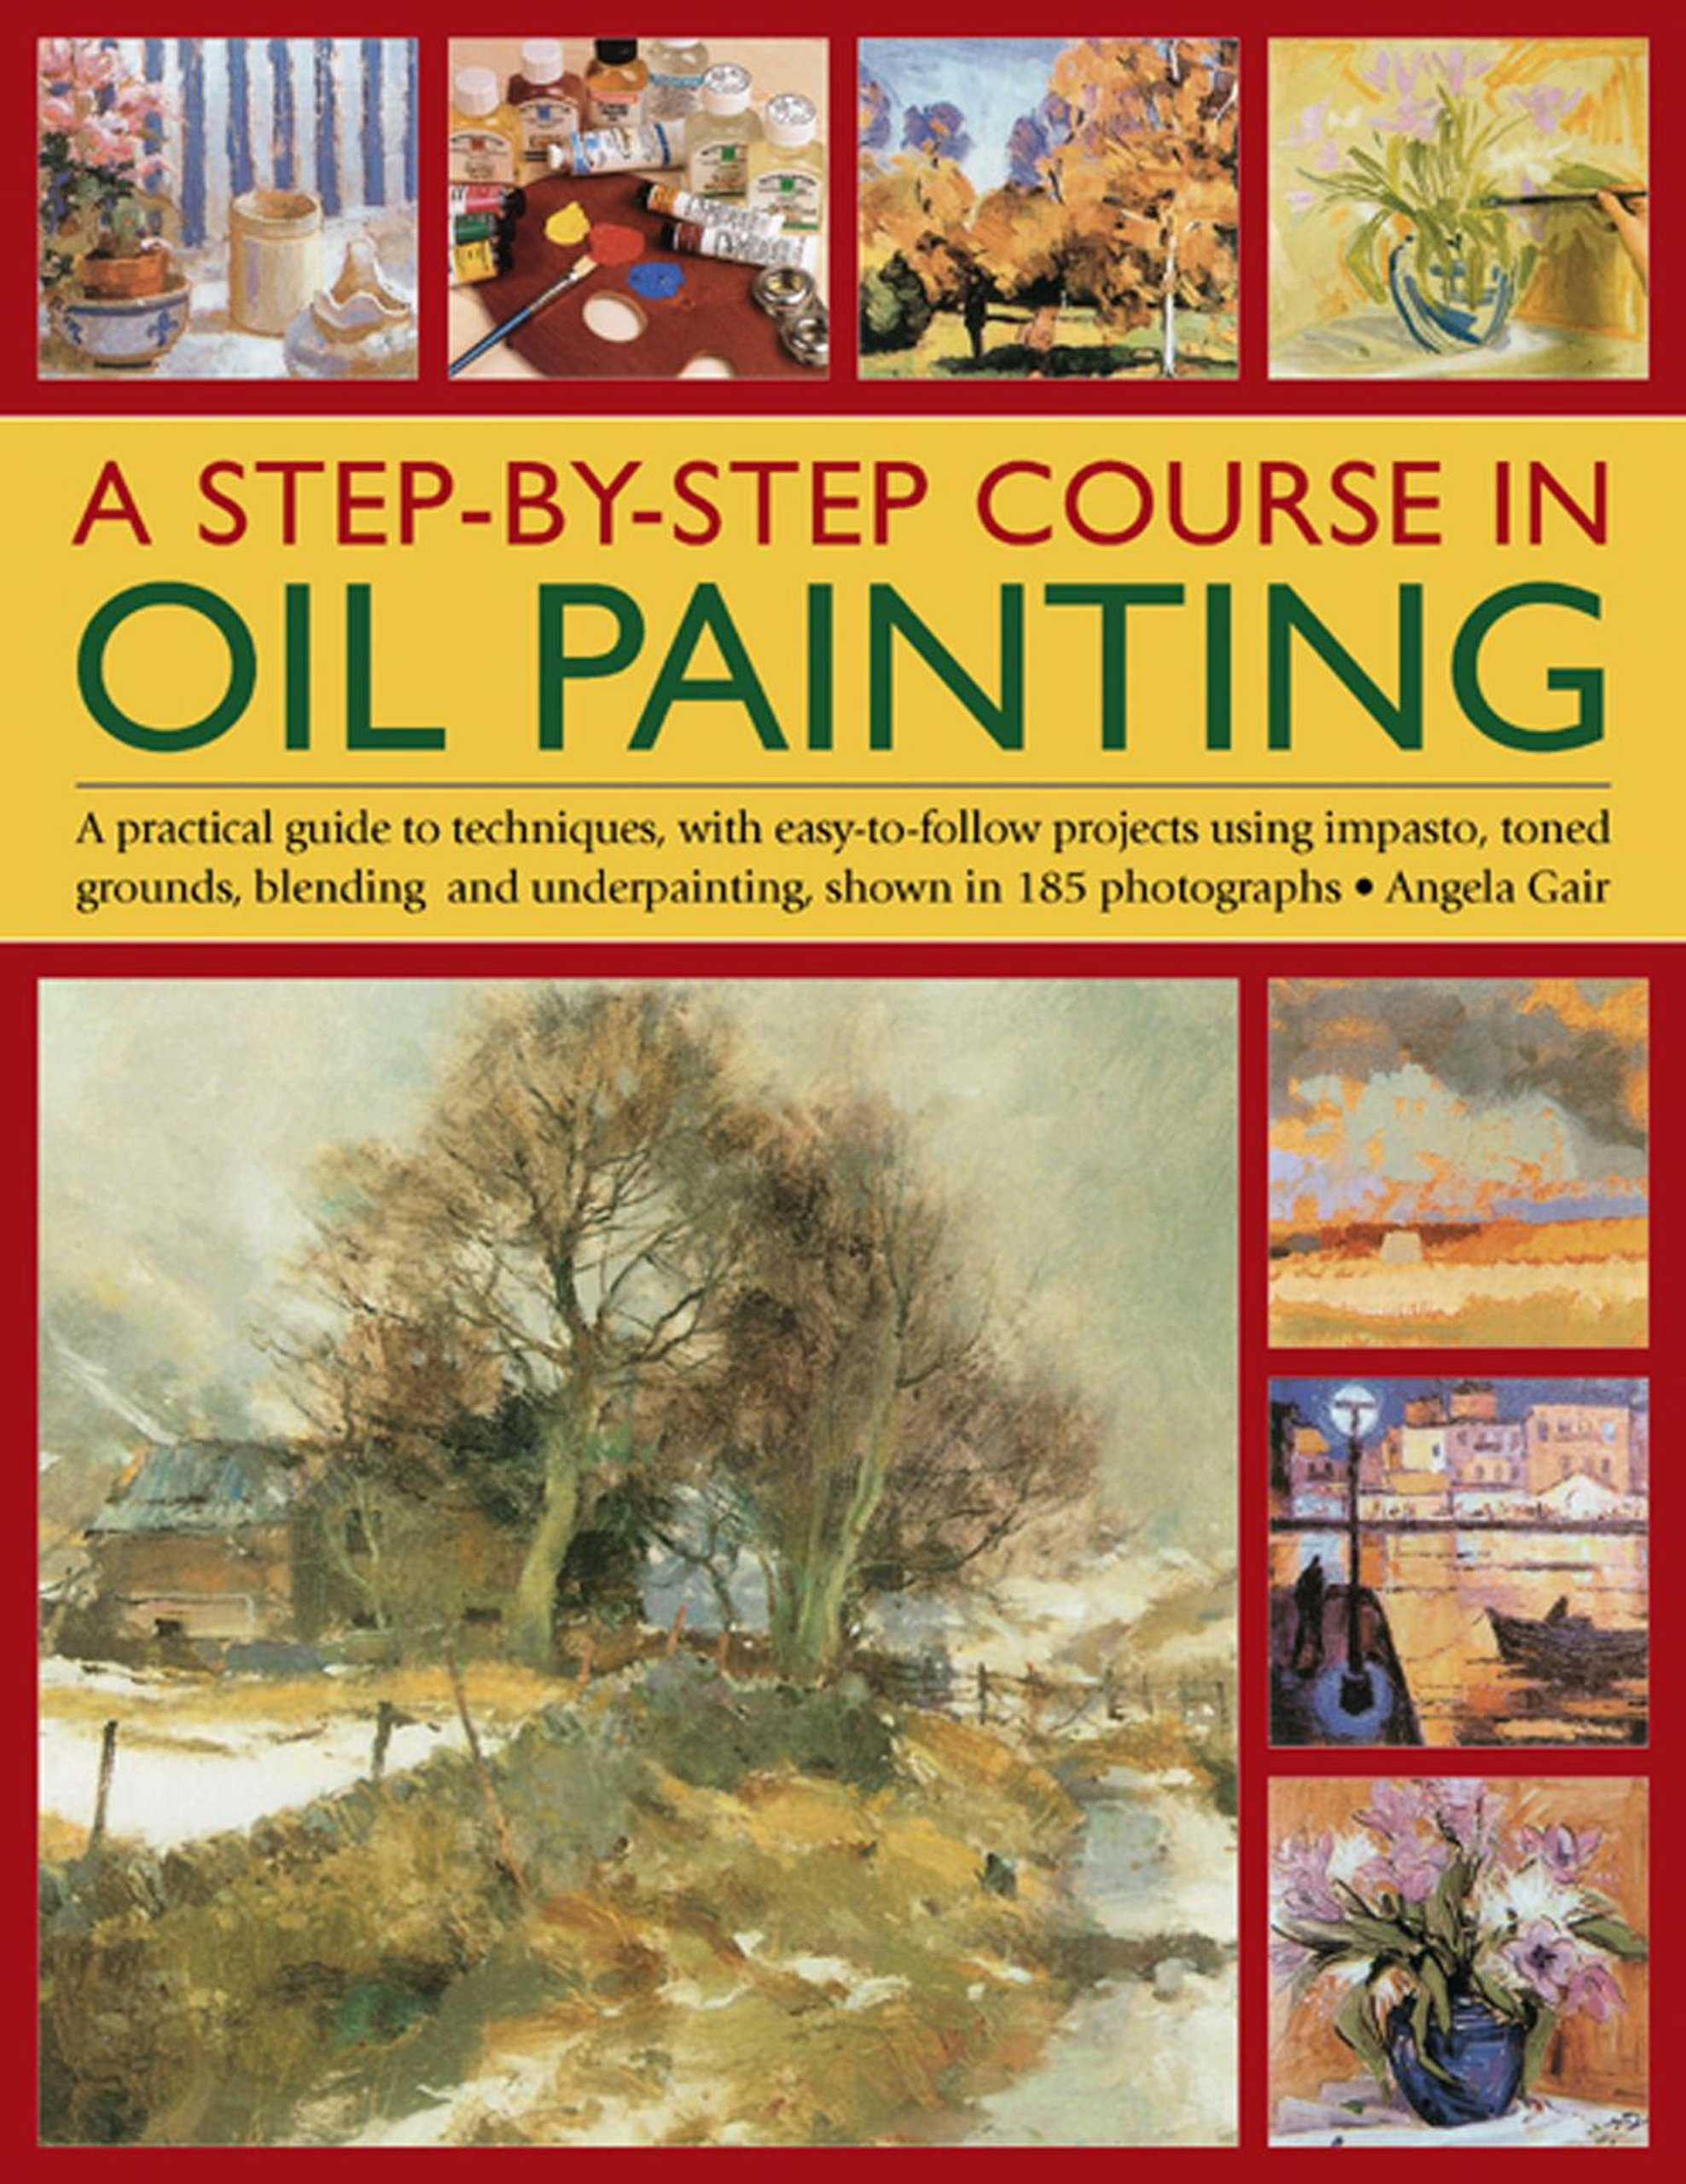 A Step-By-Step Course In Oil Painting: A Practical Guide To